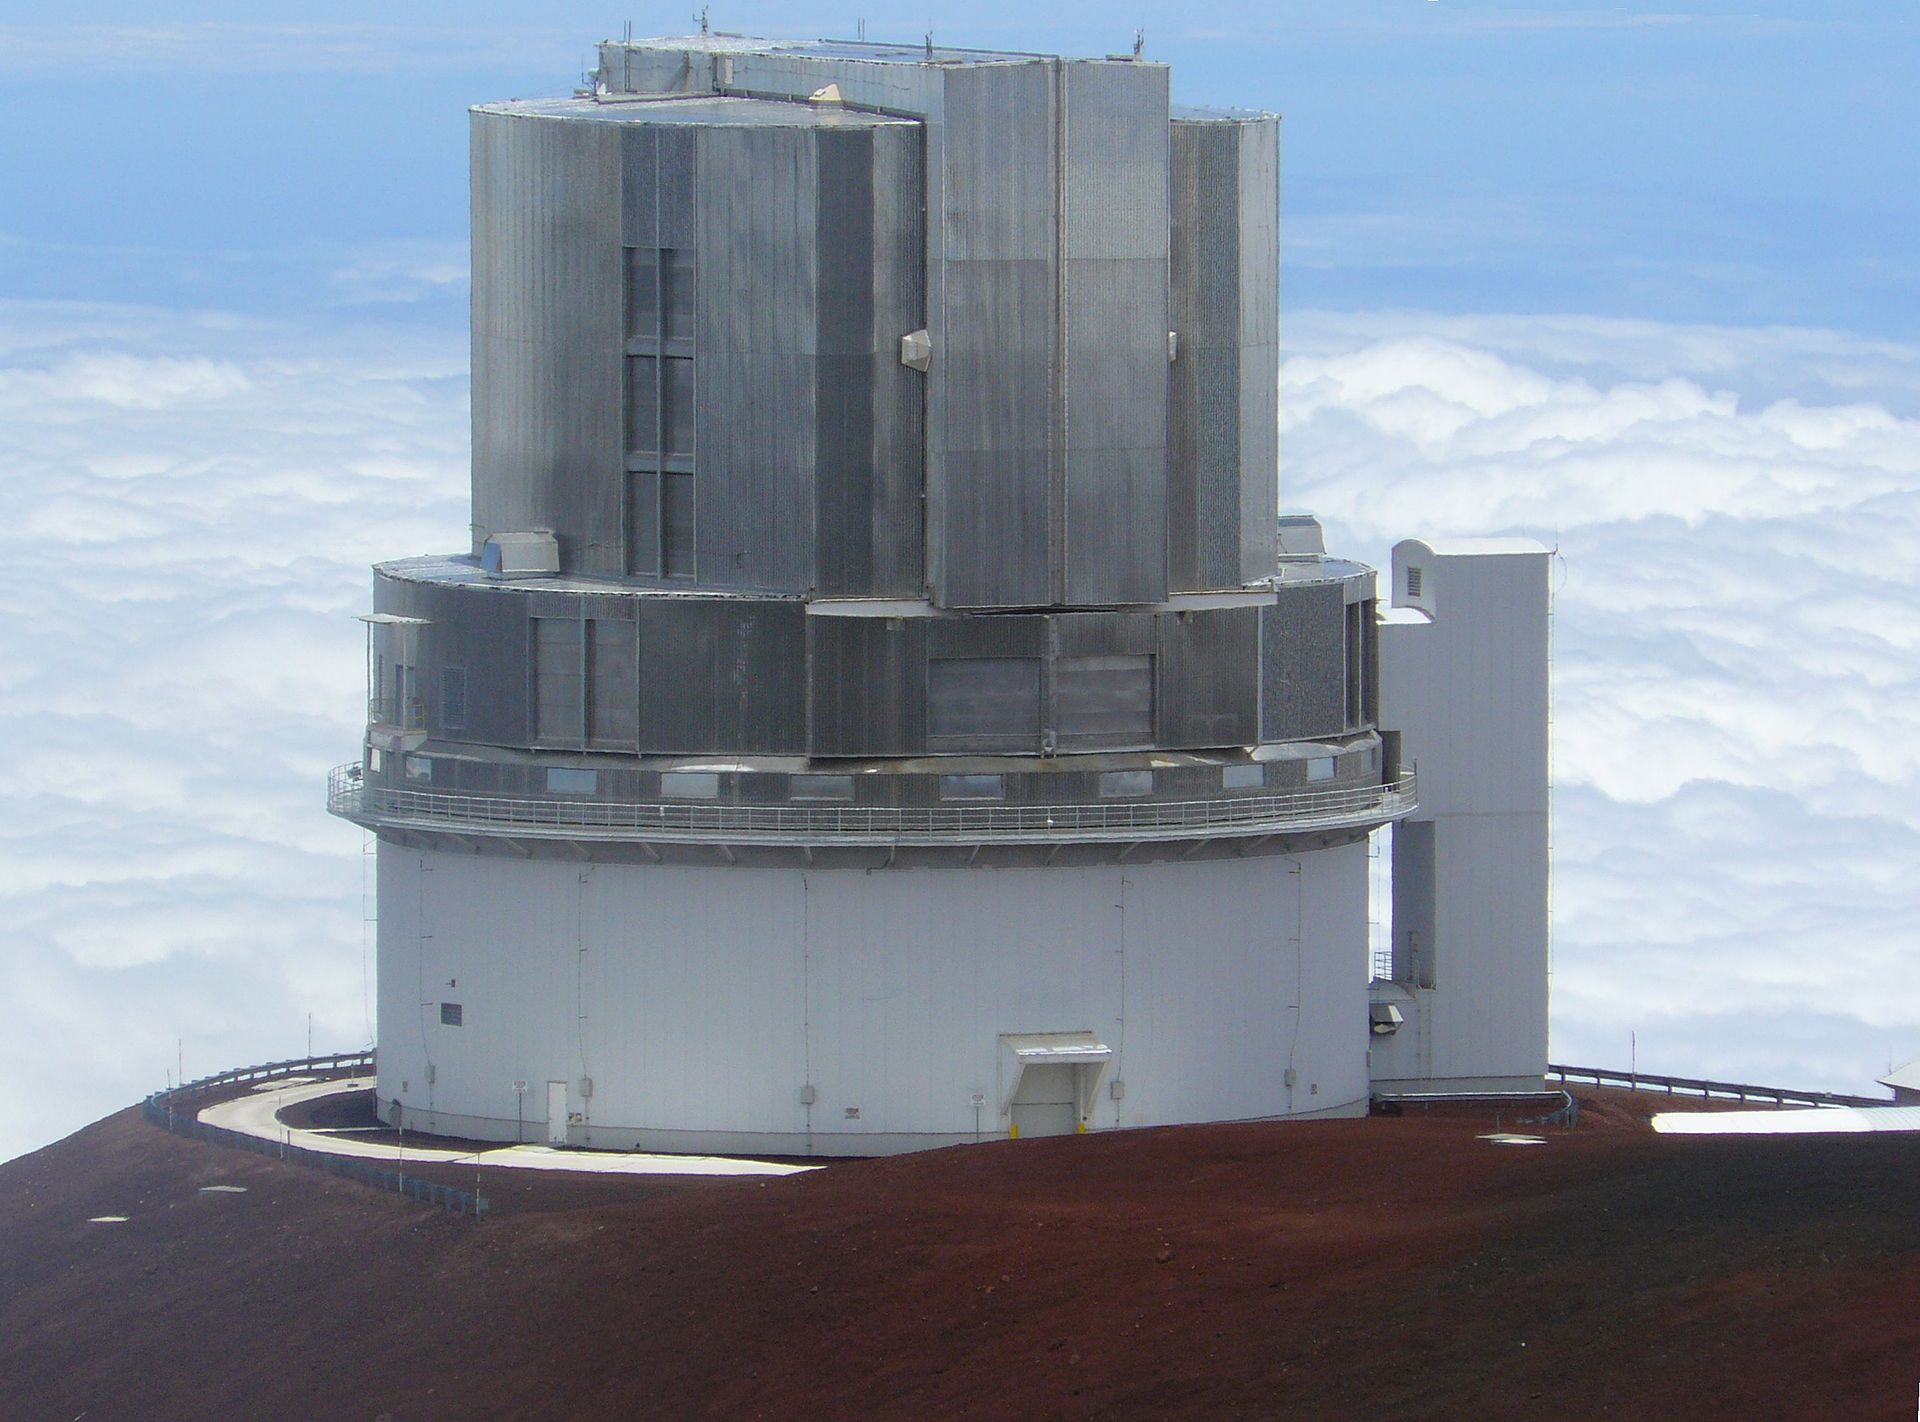 The Subaru Telescope on Mauna Kea, Hawai'i. Image credit wikimedia user Denys, CC BY 3.0.